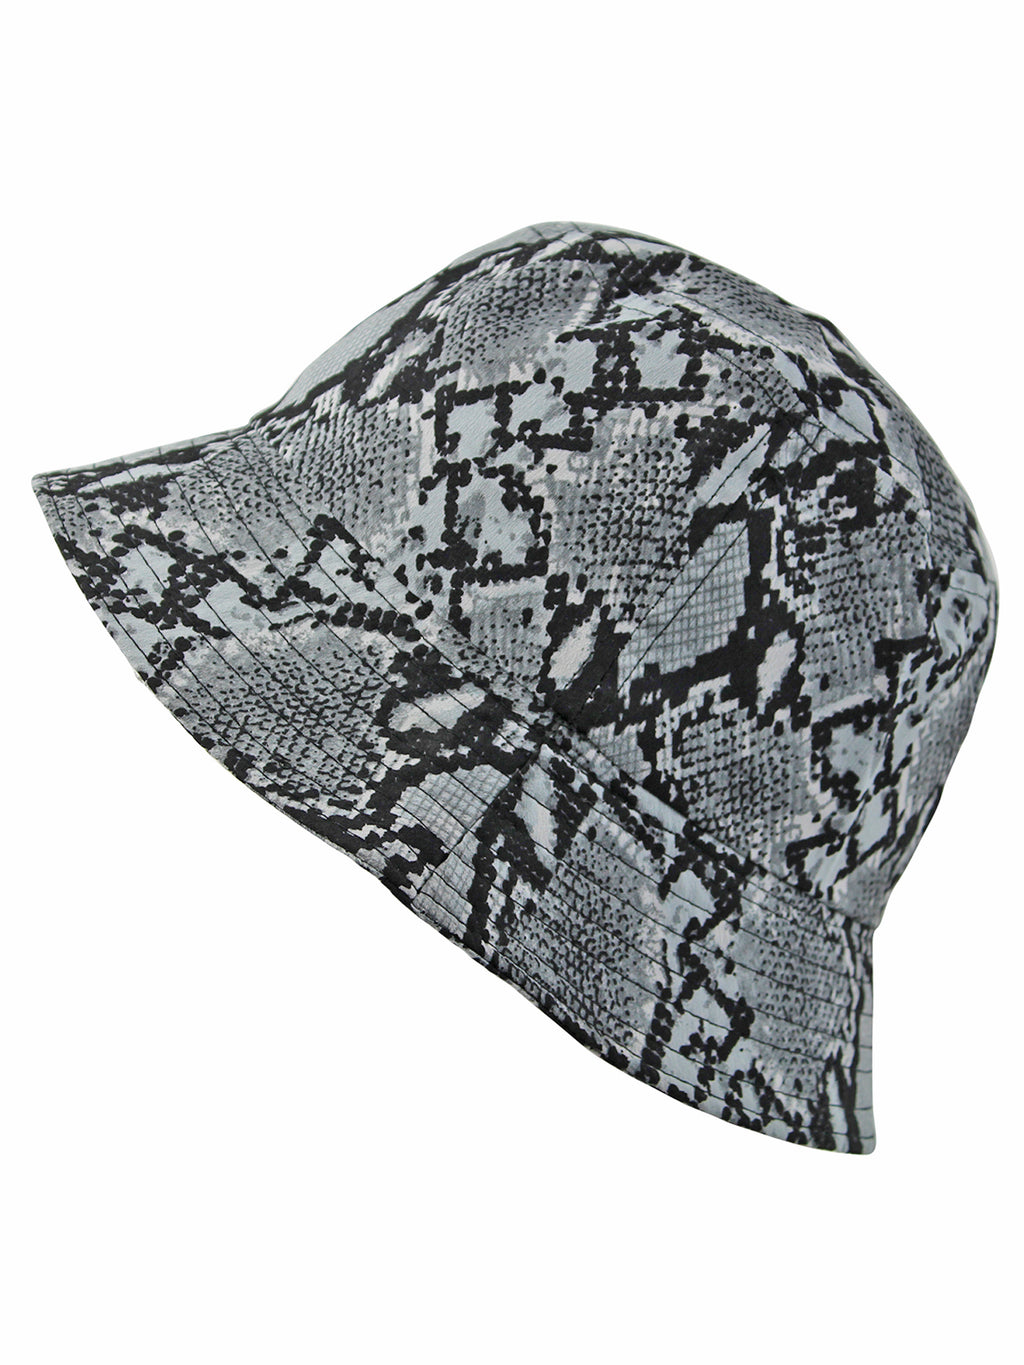 Gray & Black Snake Print Bucket Hat